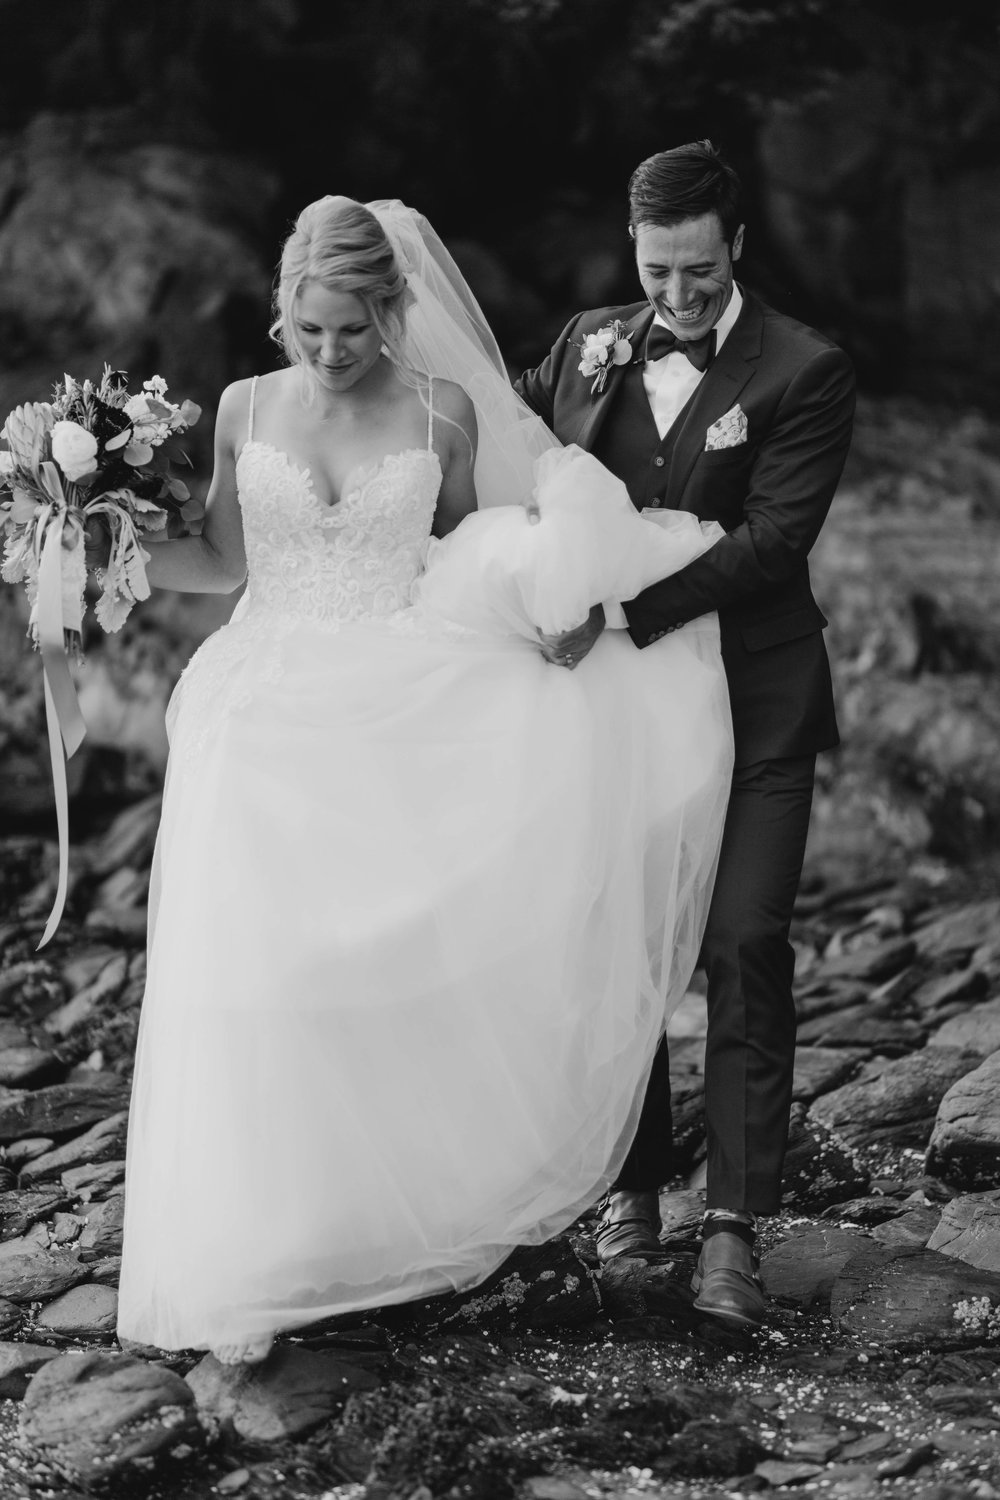 Utah-Wedding-Photographer-78.jpg